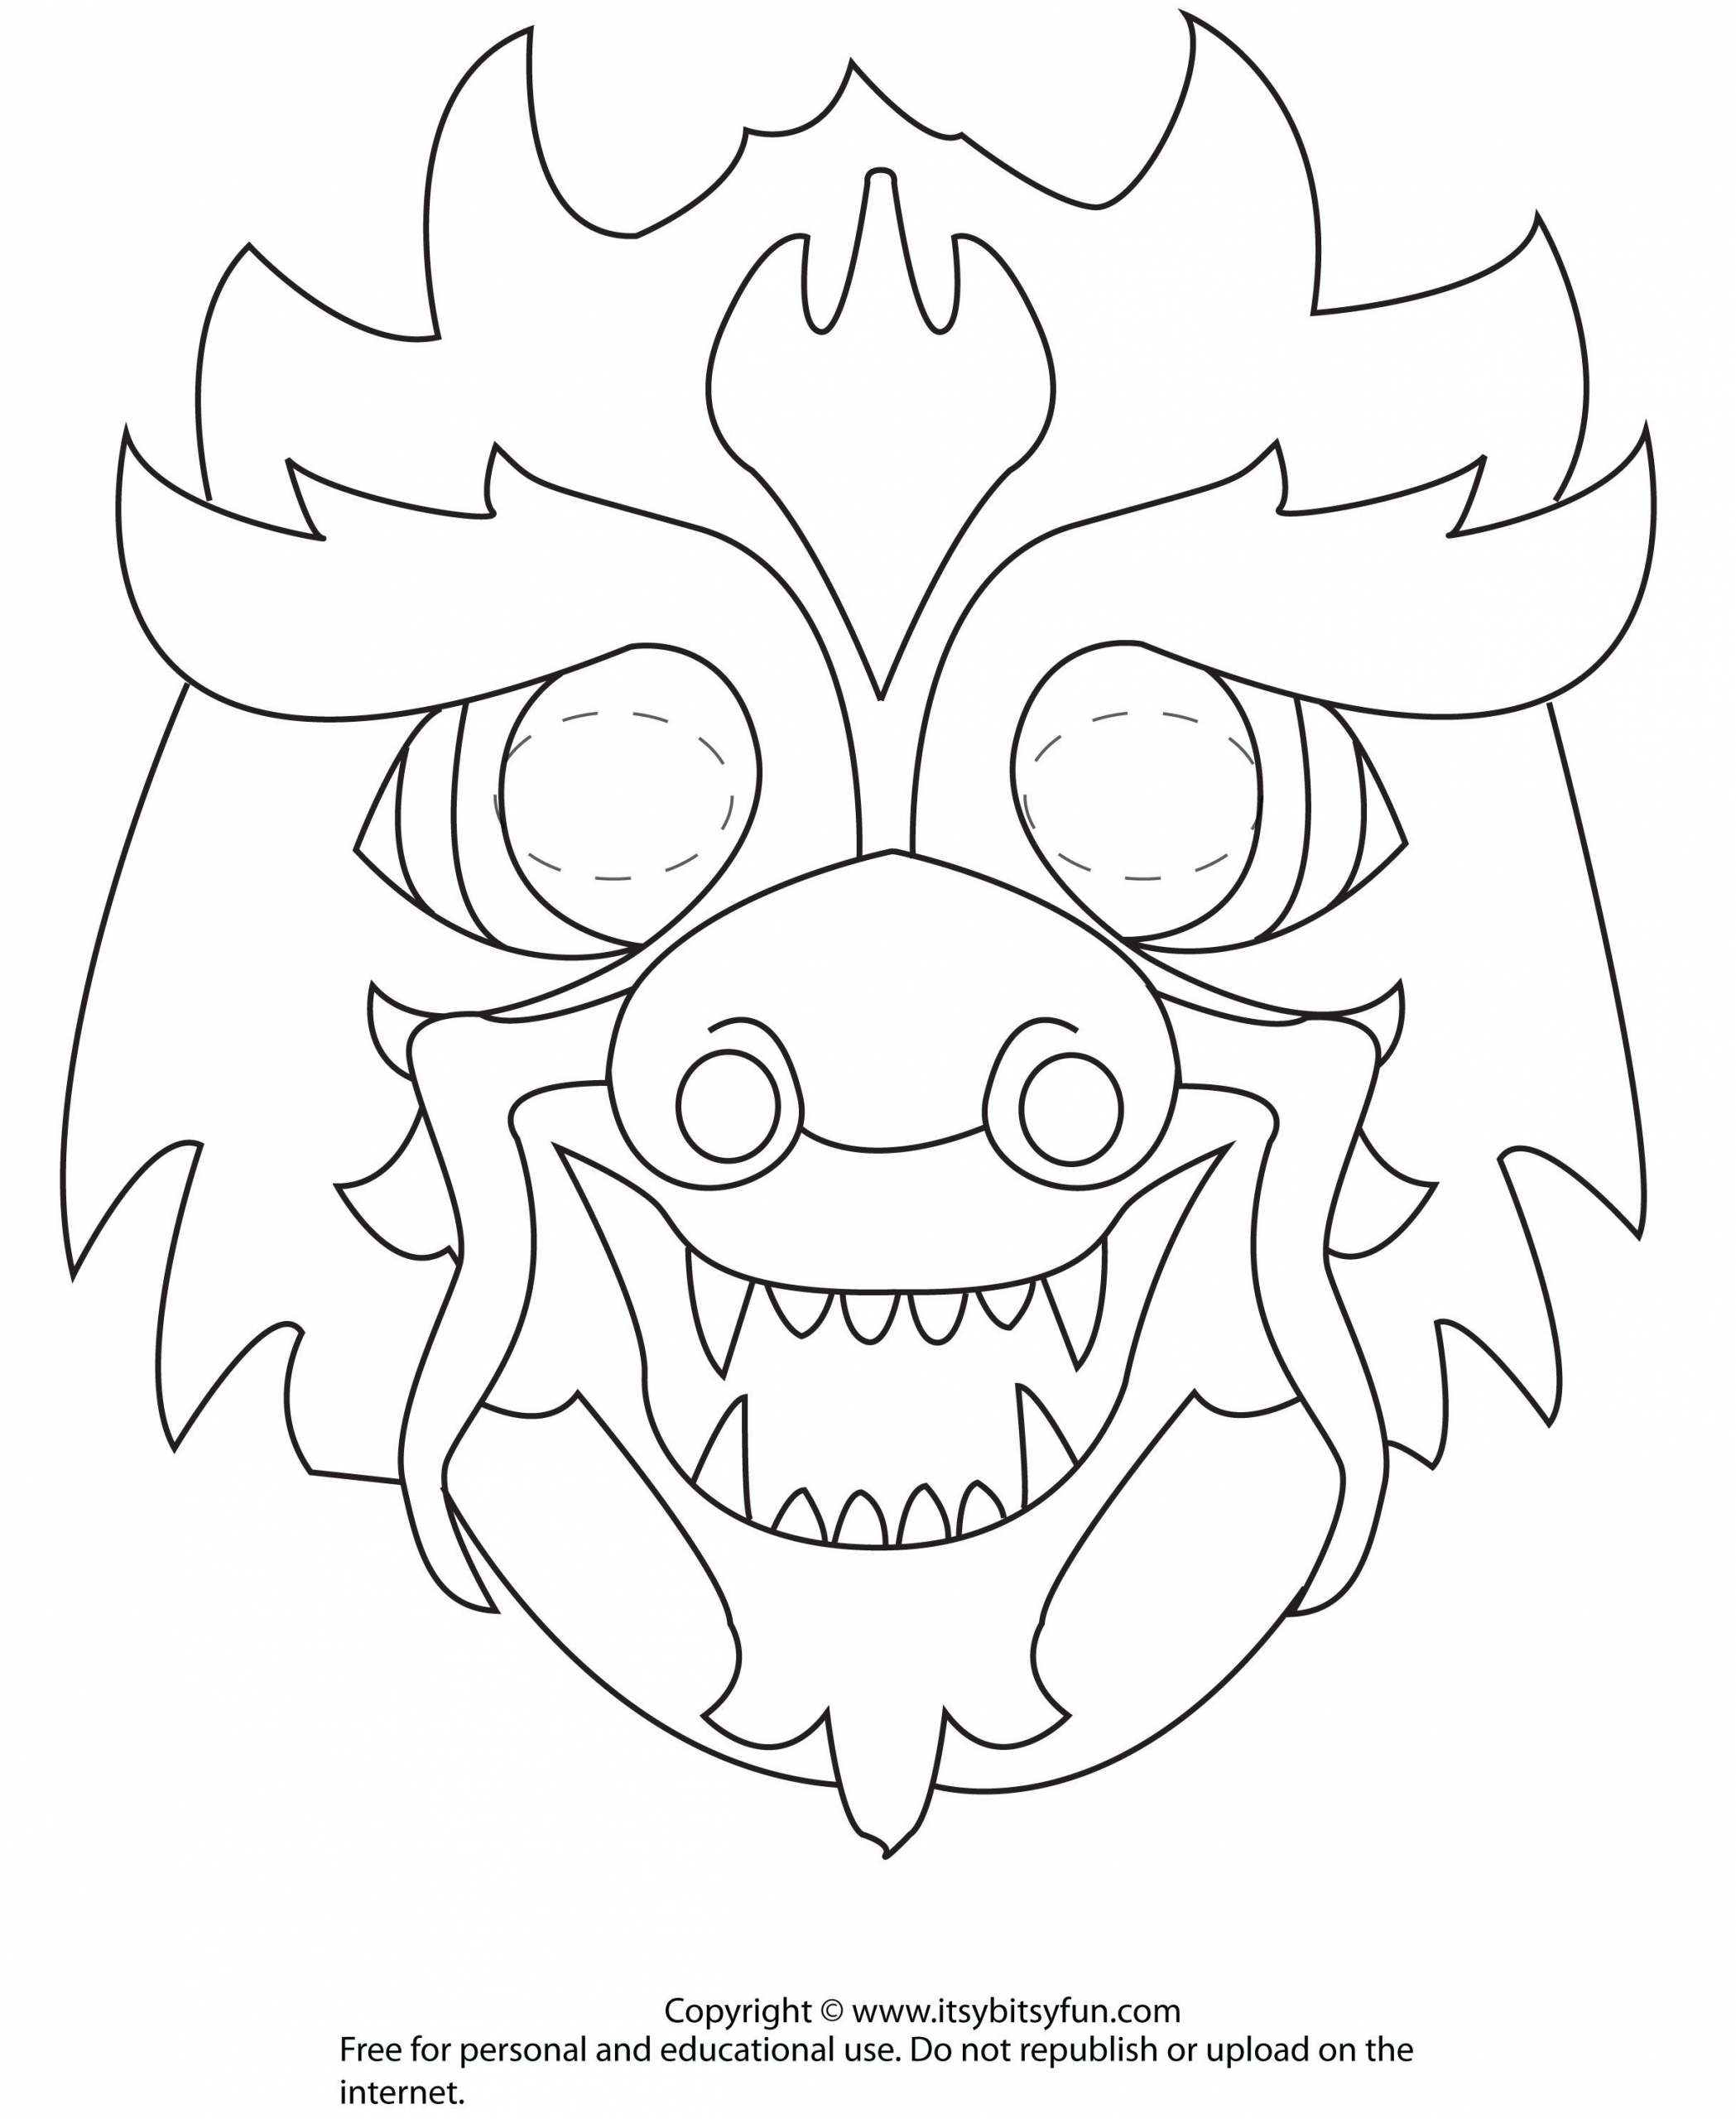 Dragon Mask Coloring Page Youngandtae Com Dragon Mask Chinese New Year Dragon Chinese New Year Crafts